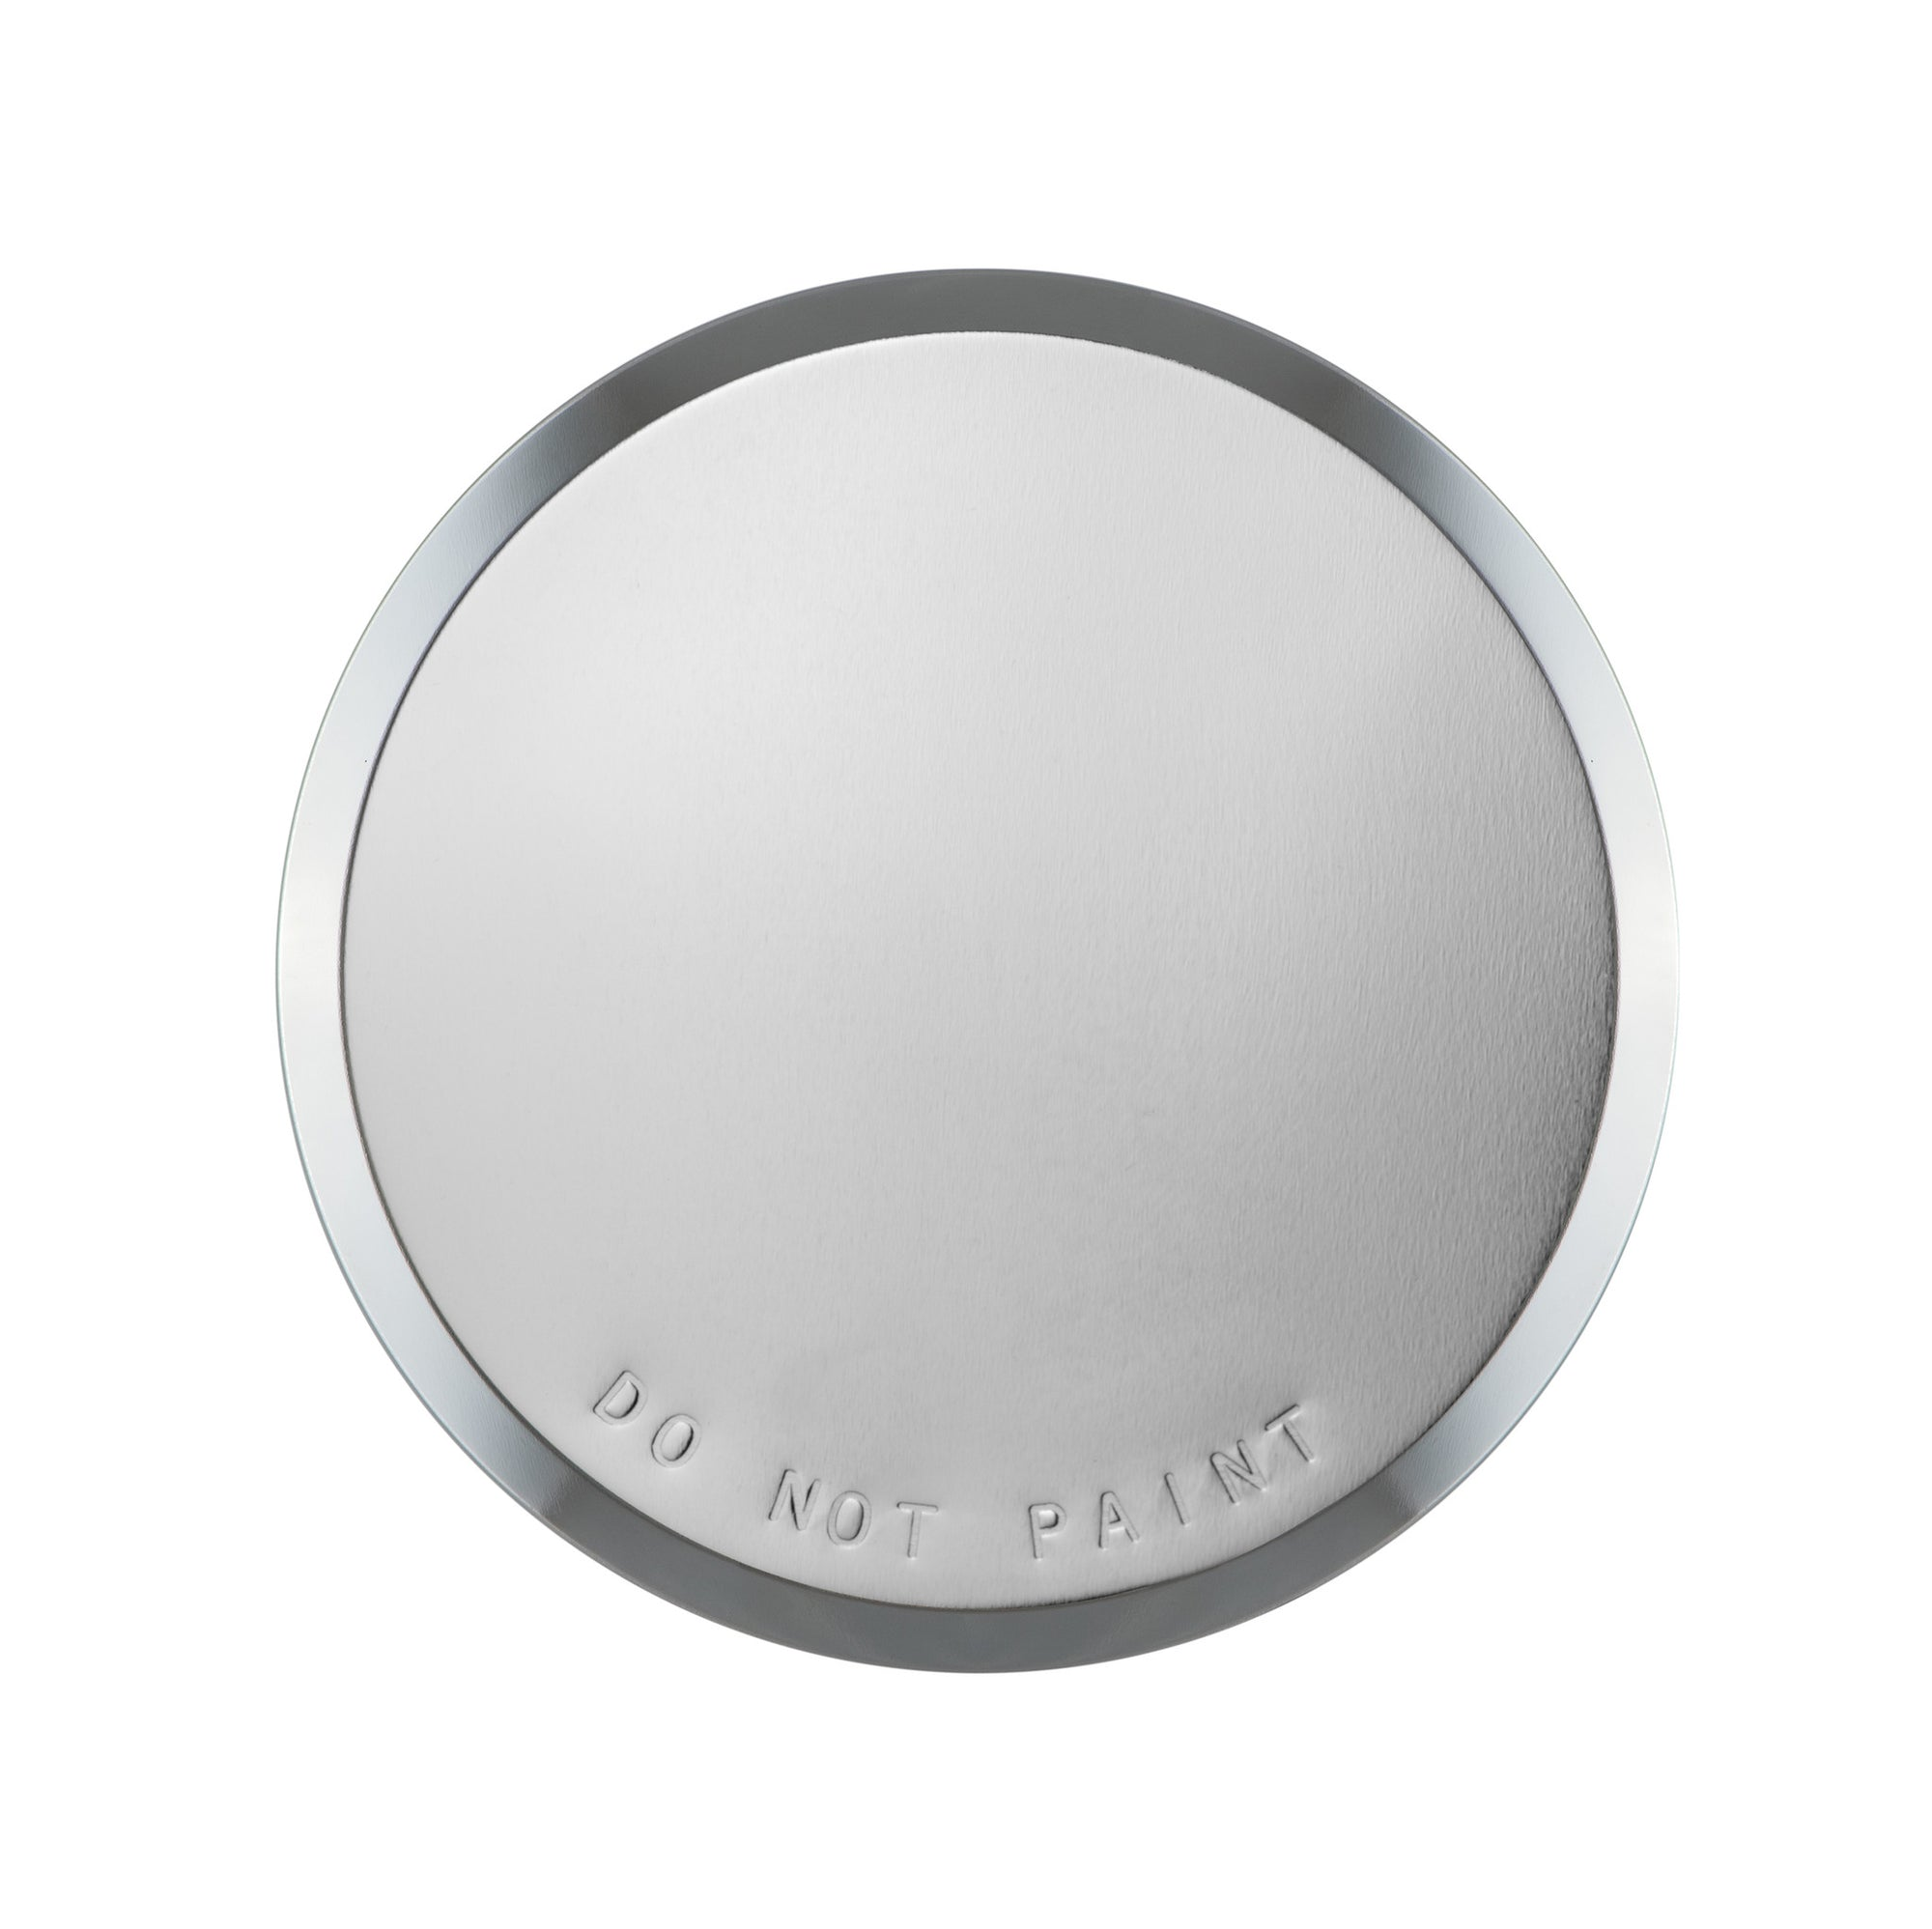 "Cover Plate for CN Sprinklers, Residential/Commercial, 2-3/8"" Nickel (Mirror Finish)"